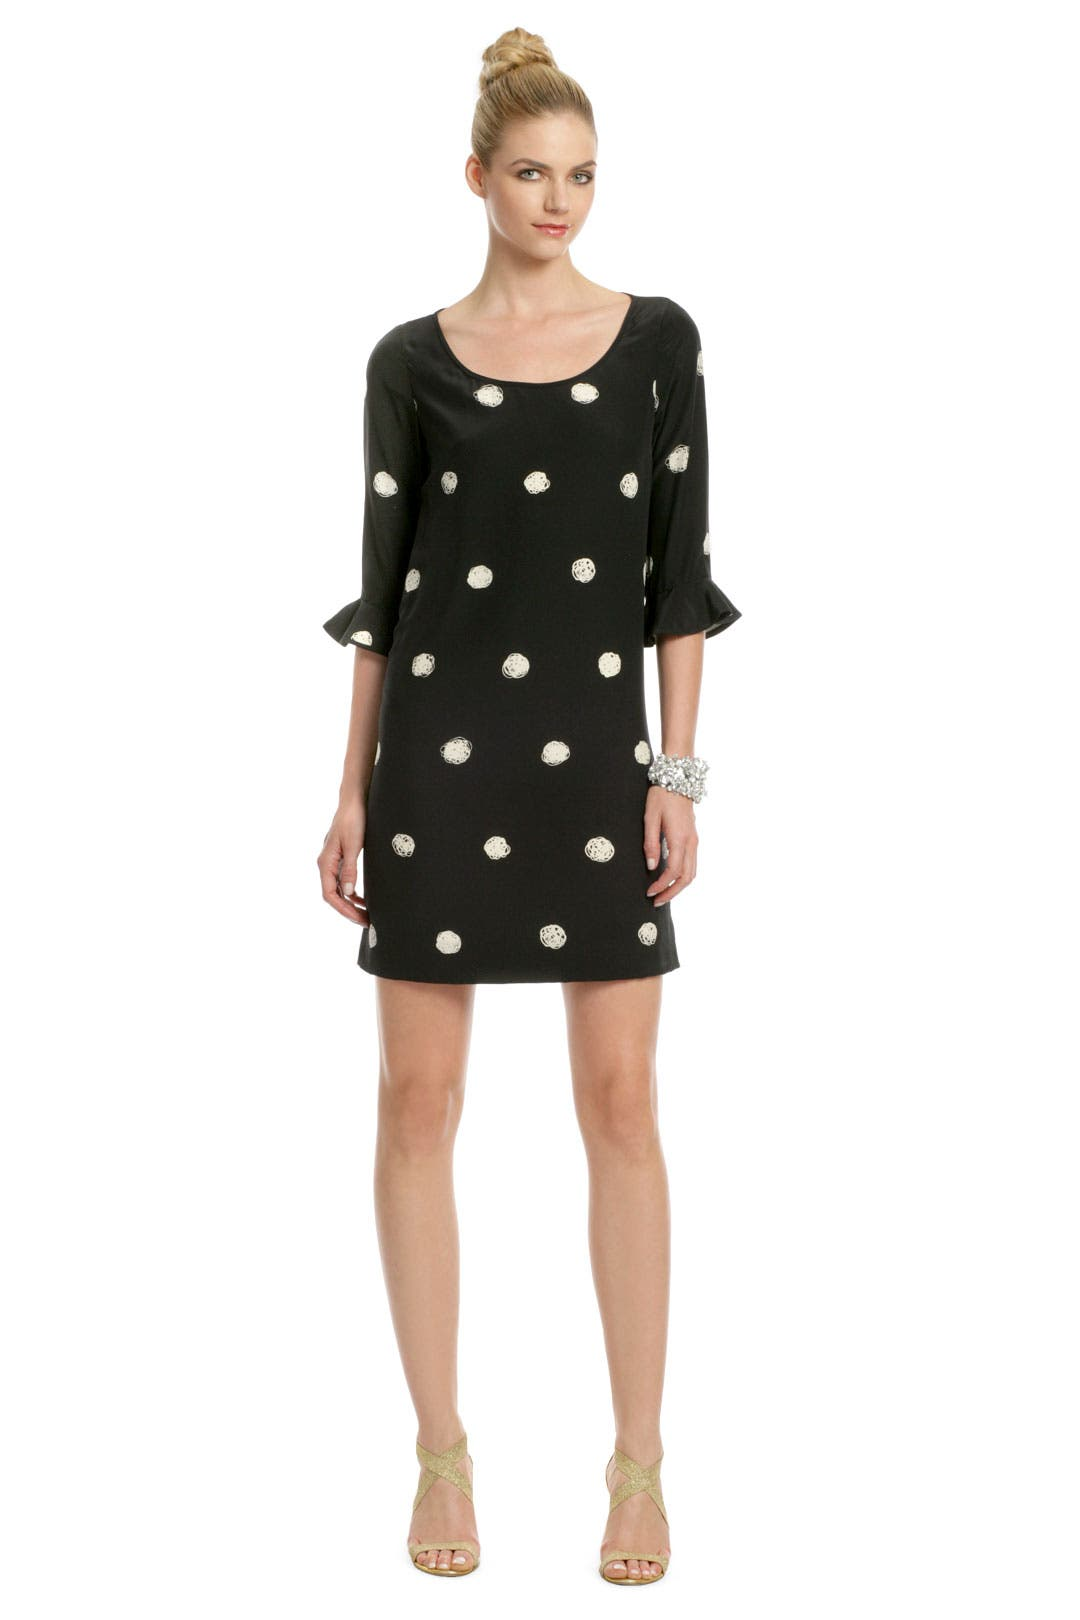 Scribble Scrabble Dress by kate spade new york